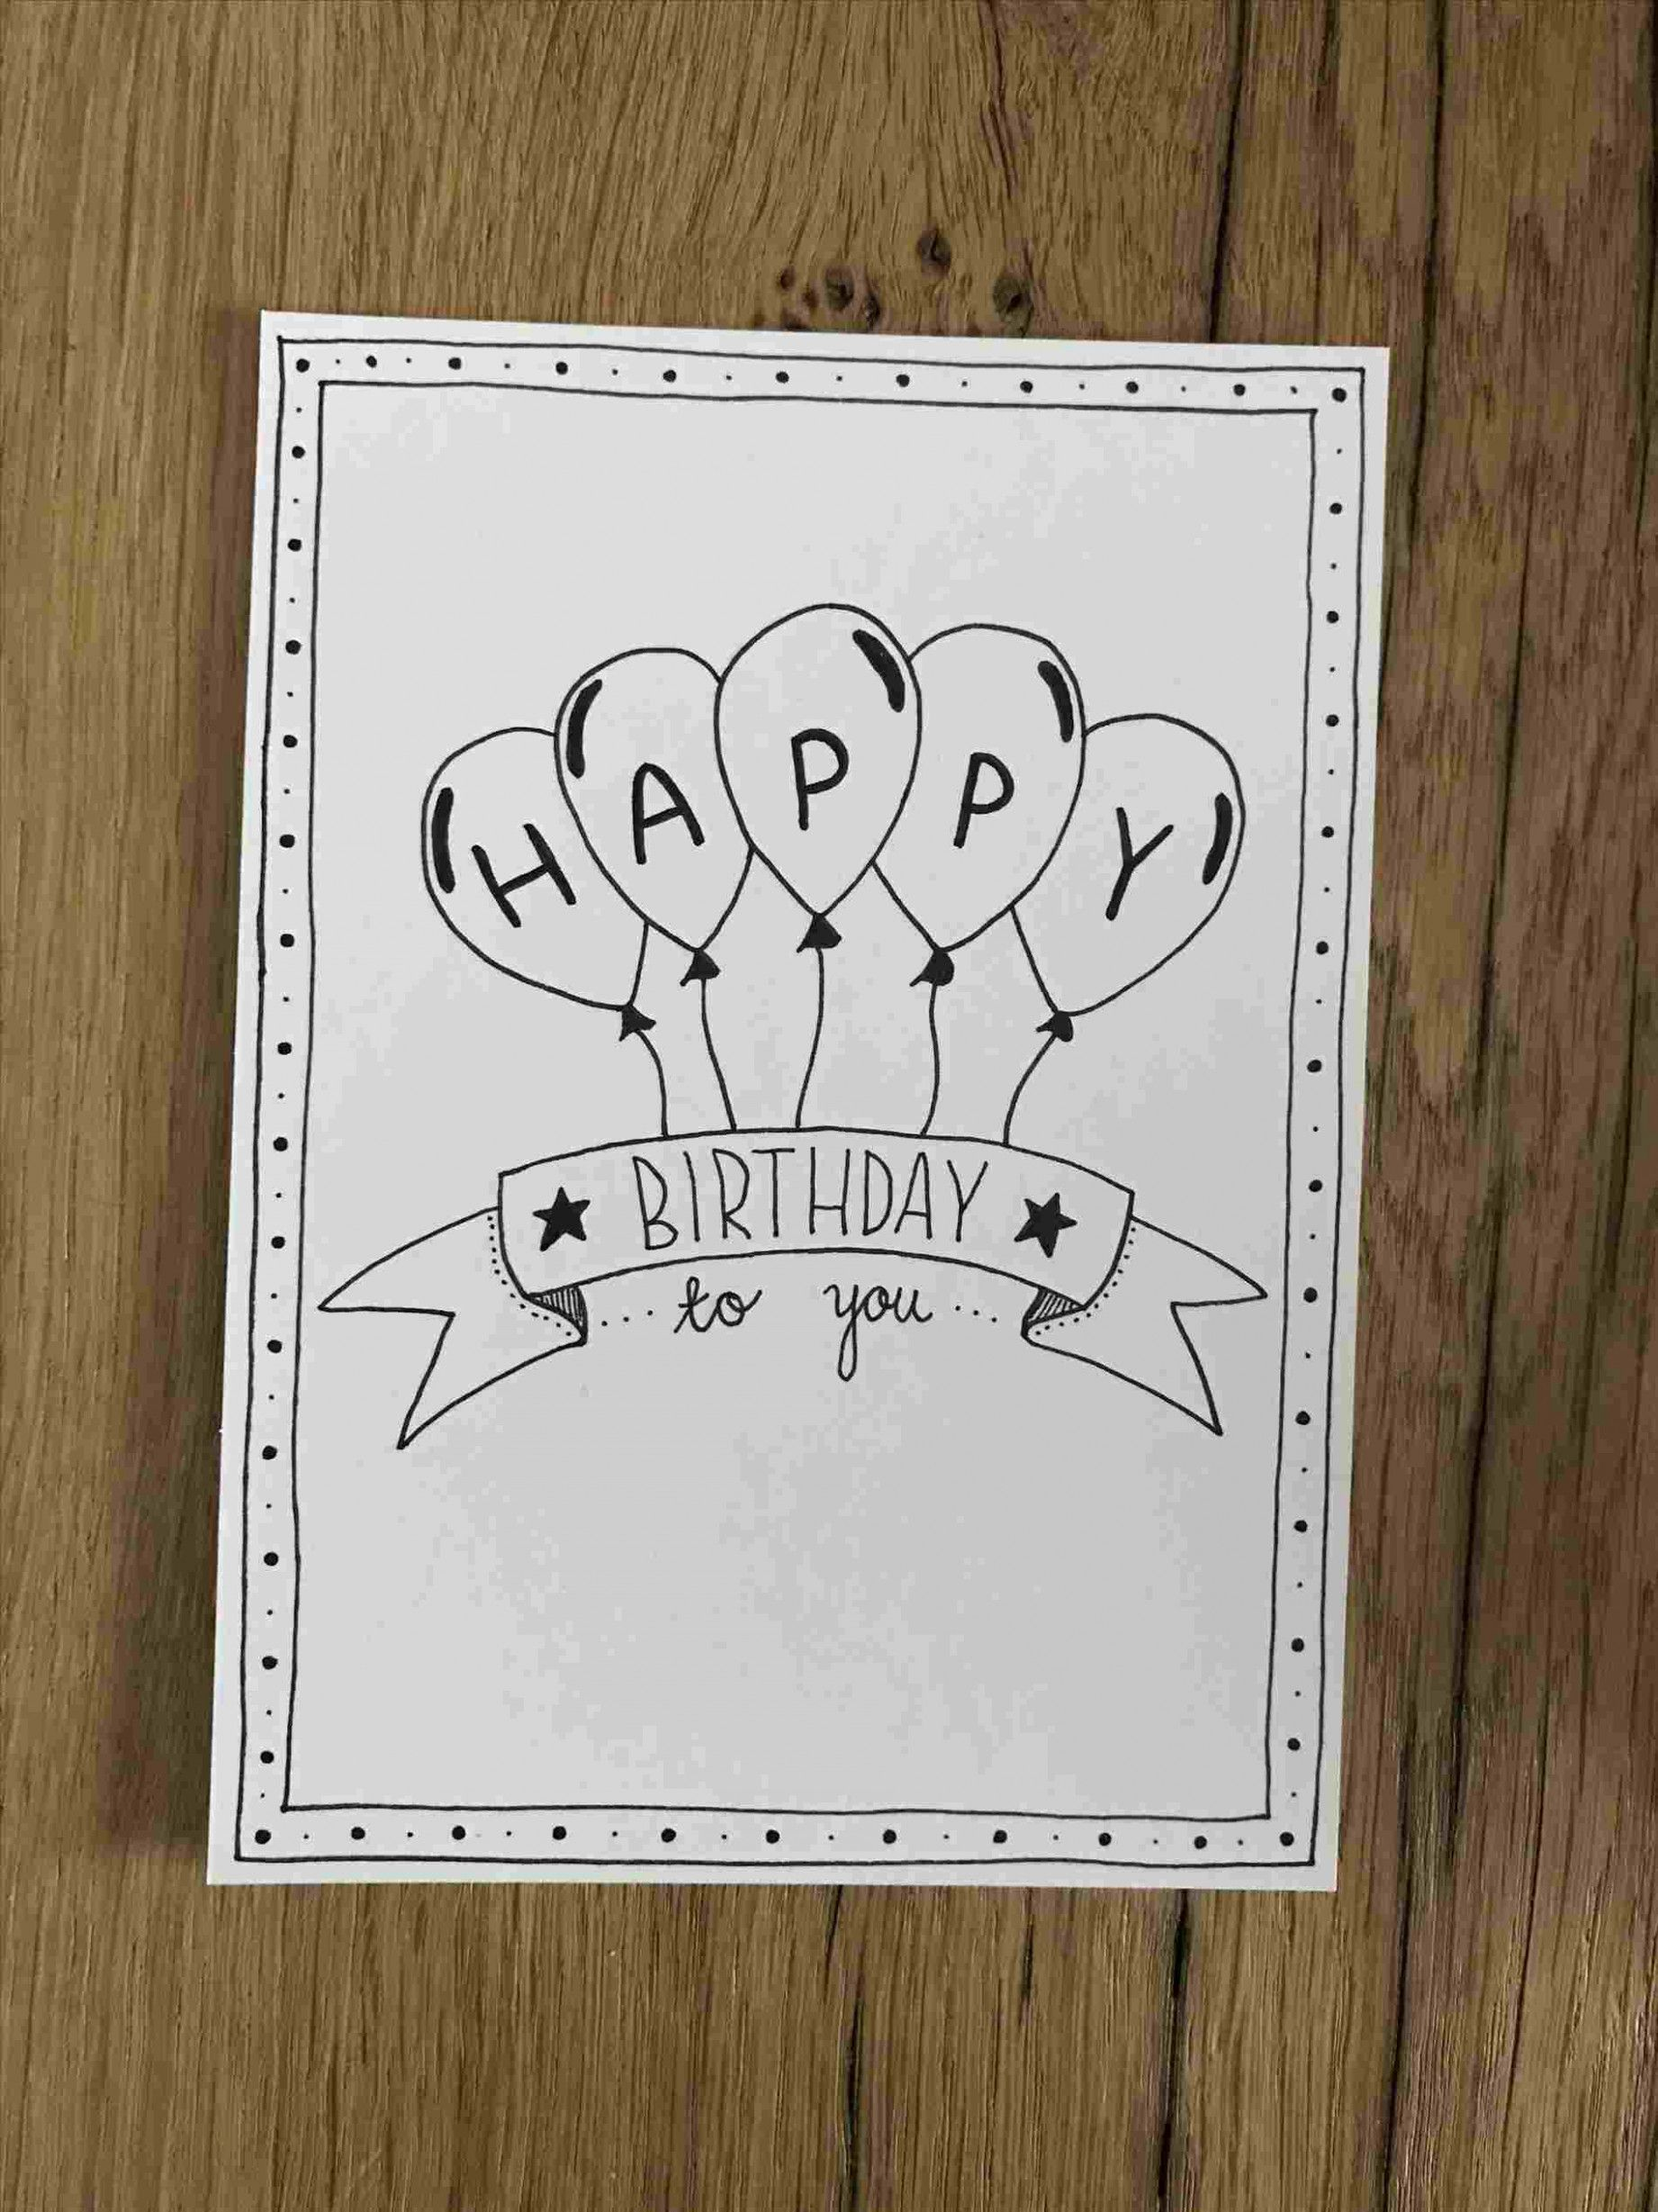 How To Draw A Happy Birthday Card Inspiration In Rhpinterestcom